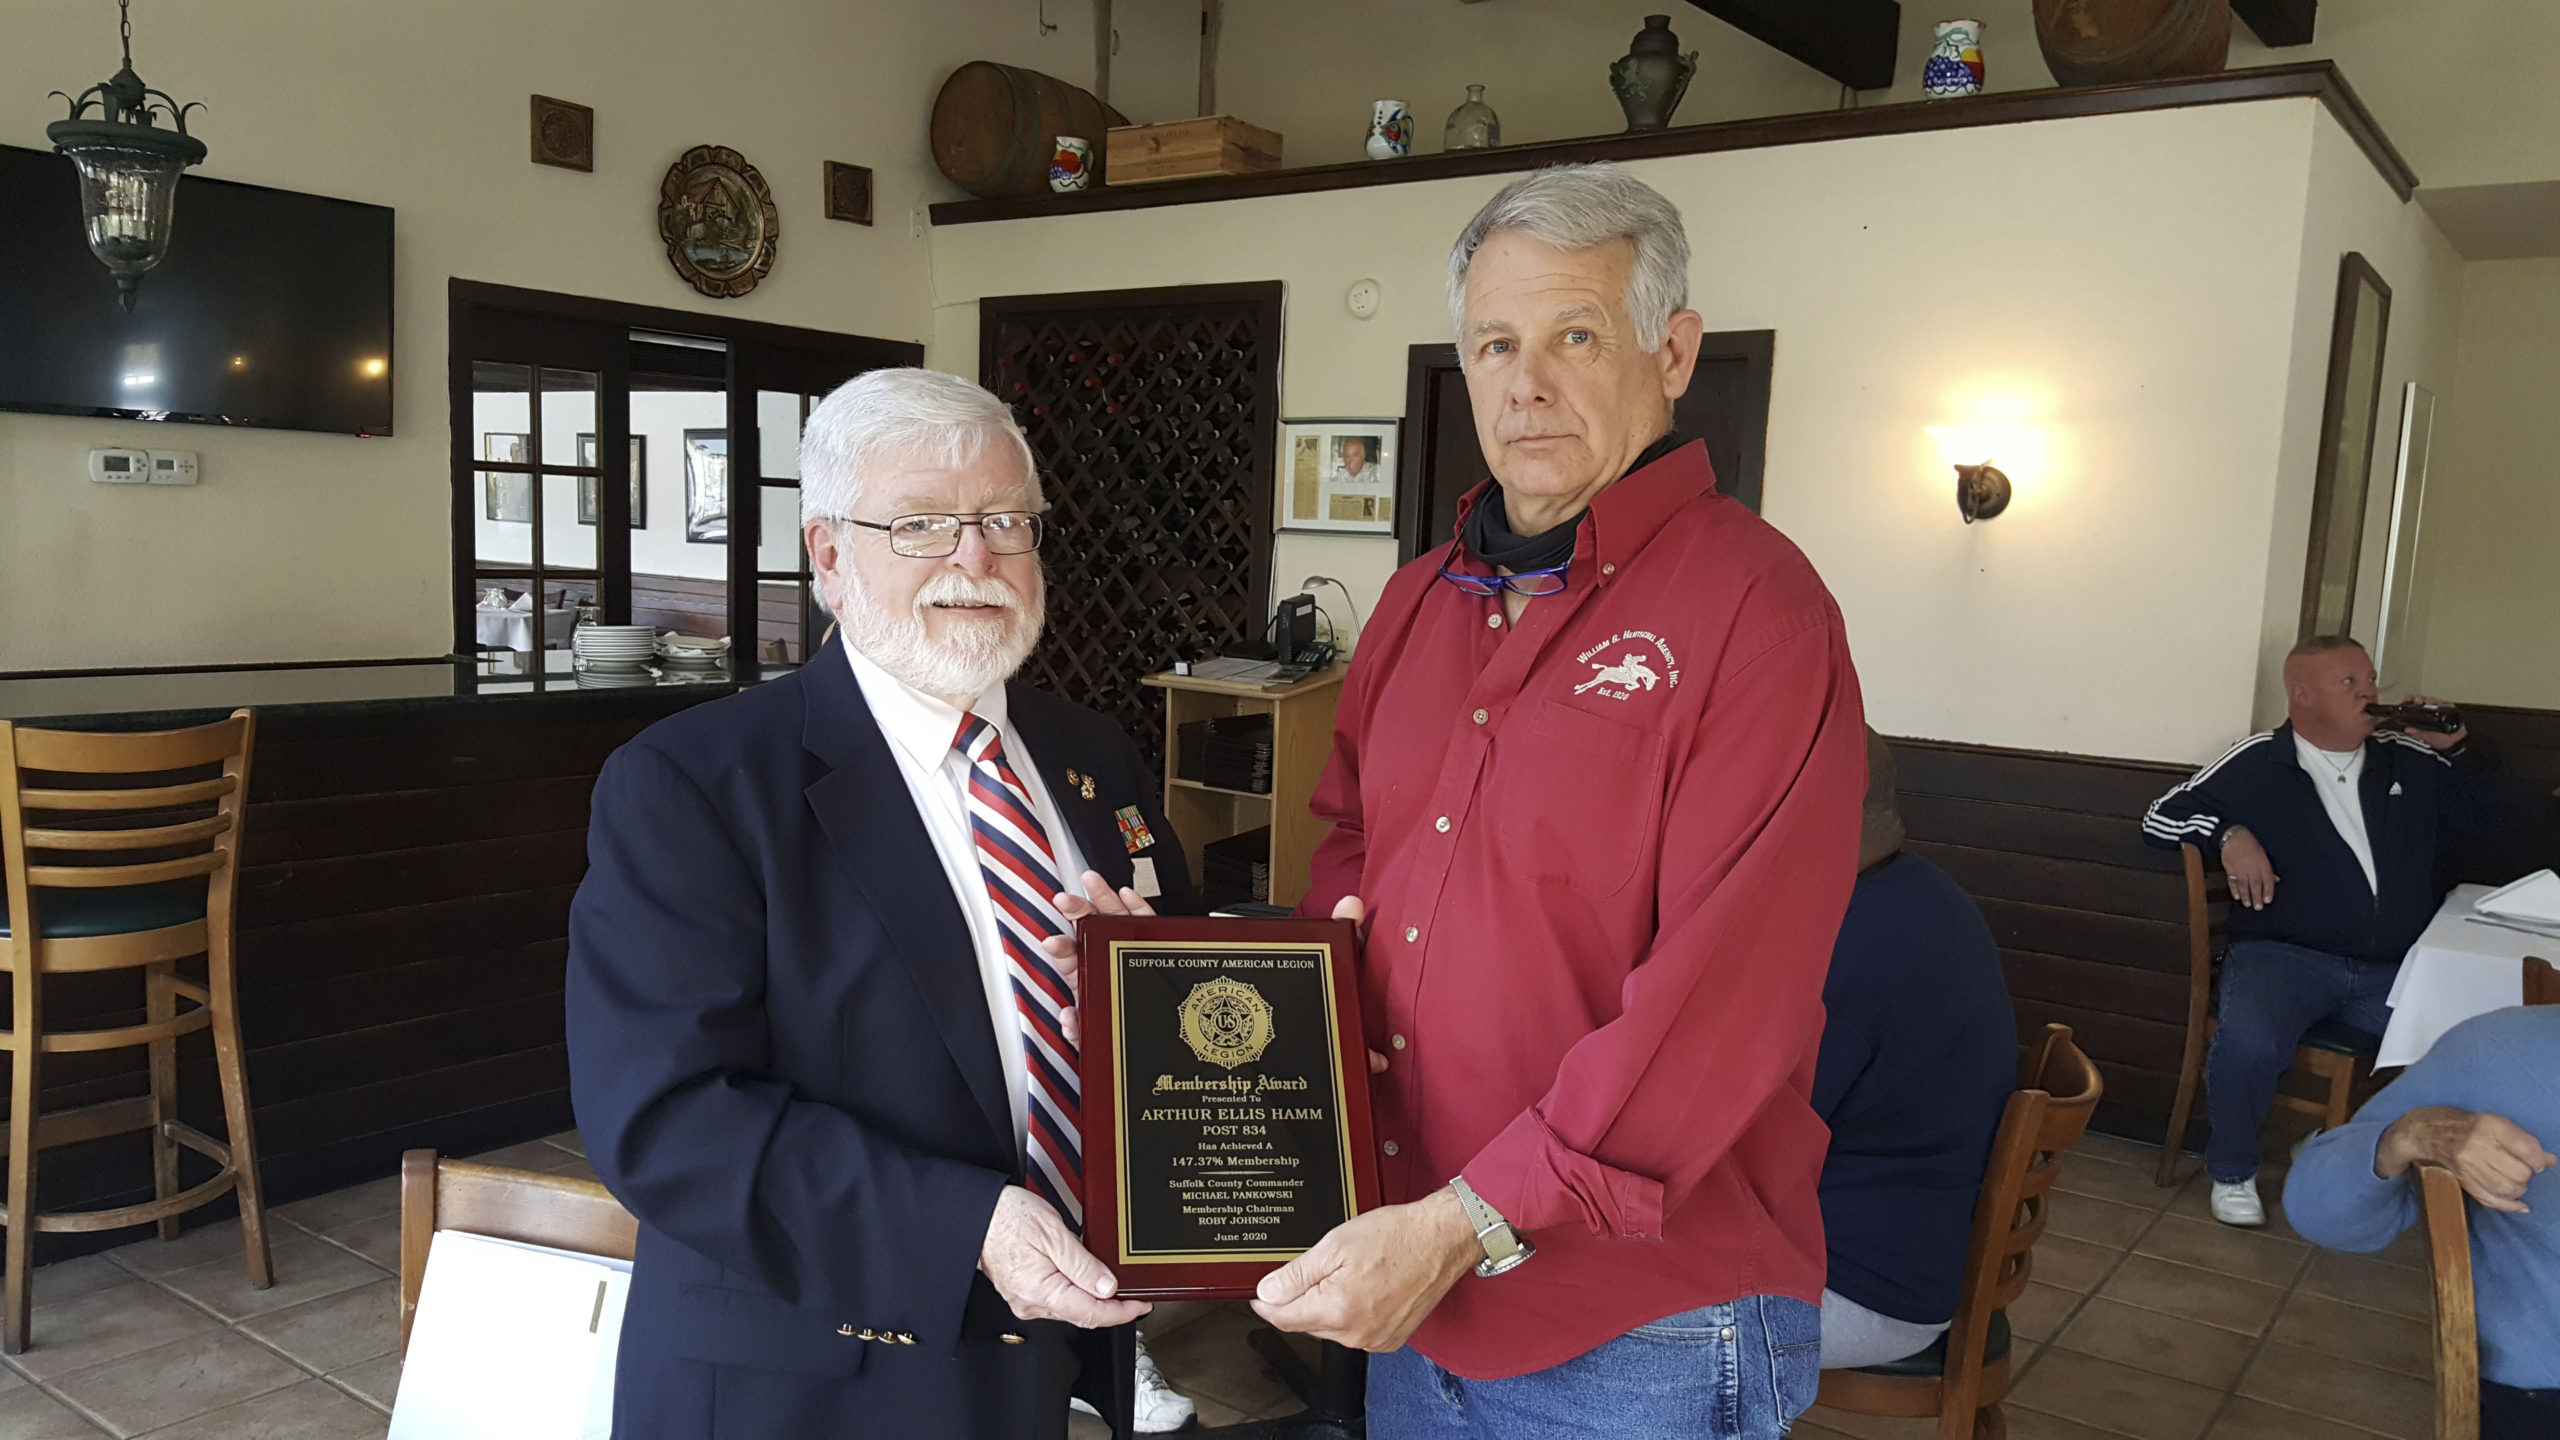 Membership Chair Fred Bauer of the American Legion Arthur Ellis Hamm Post 834 in Westhampton recently accepted a plaque of acknowledgement of a 20% increase in membership  from Rob Robesch, current judge advocate for the 10th district and past Nassau County Commander.